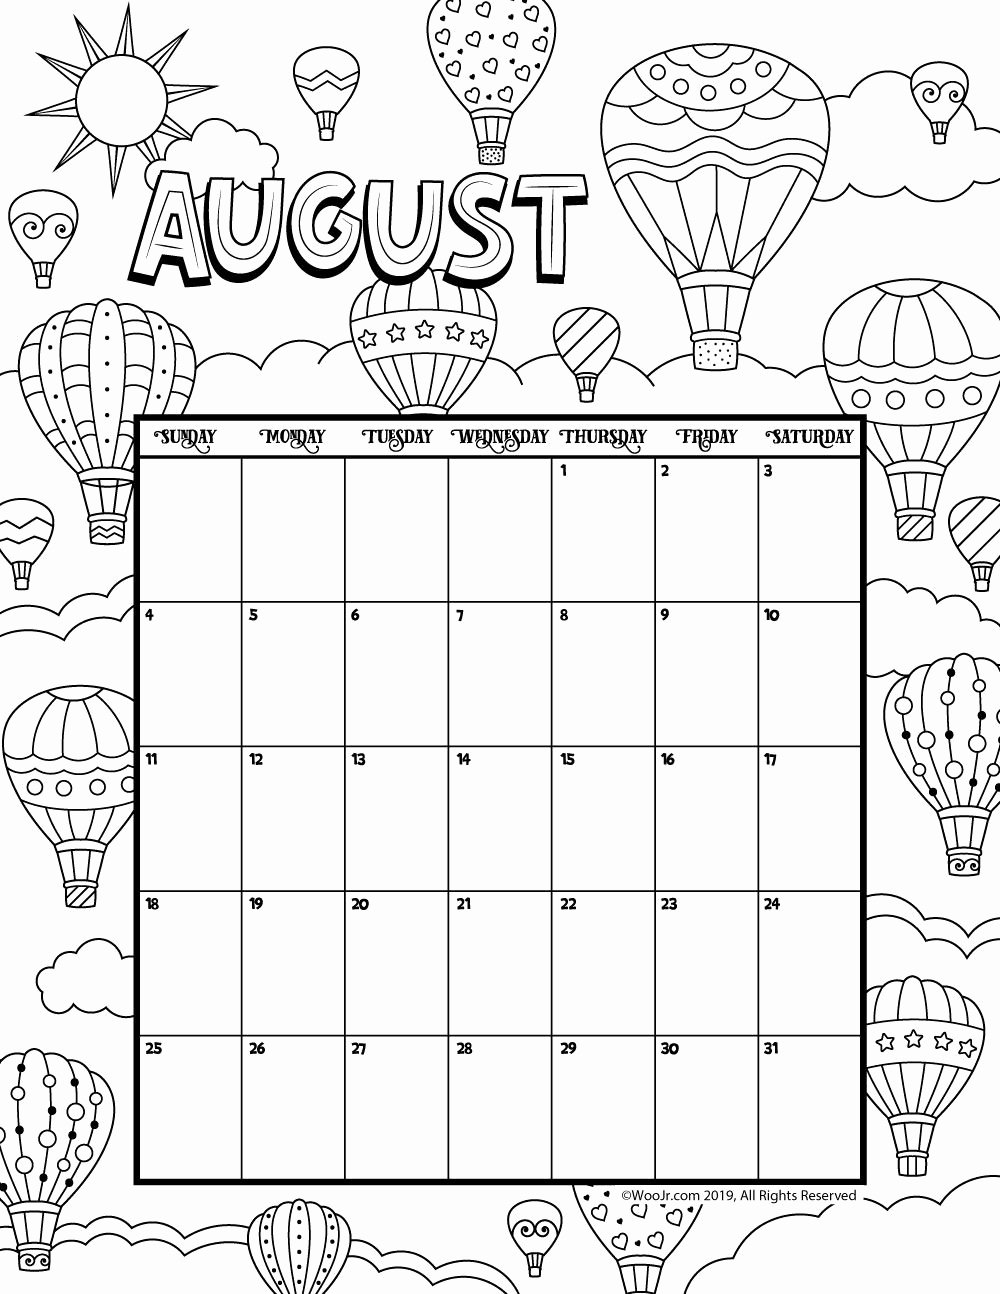 Blank Calendar for Kids Best Of August 2019 Coloring Calendar Calender